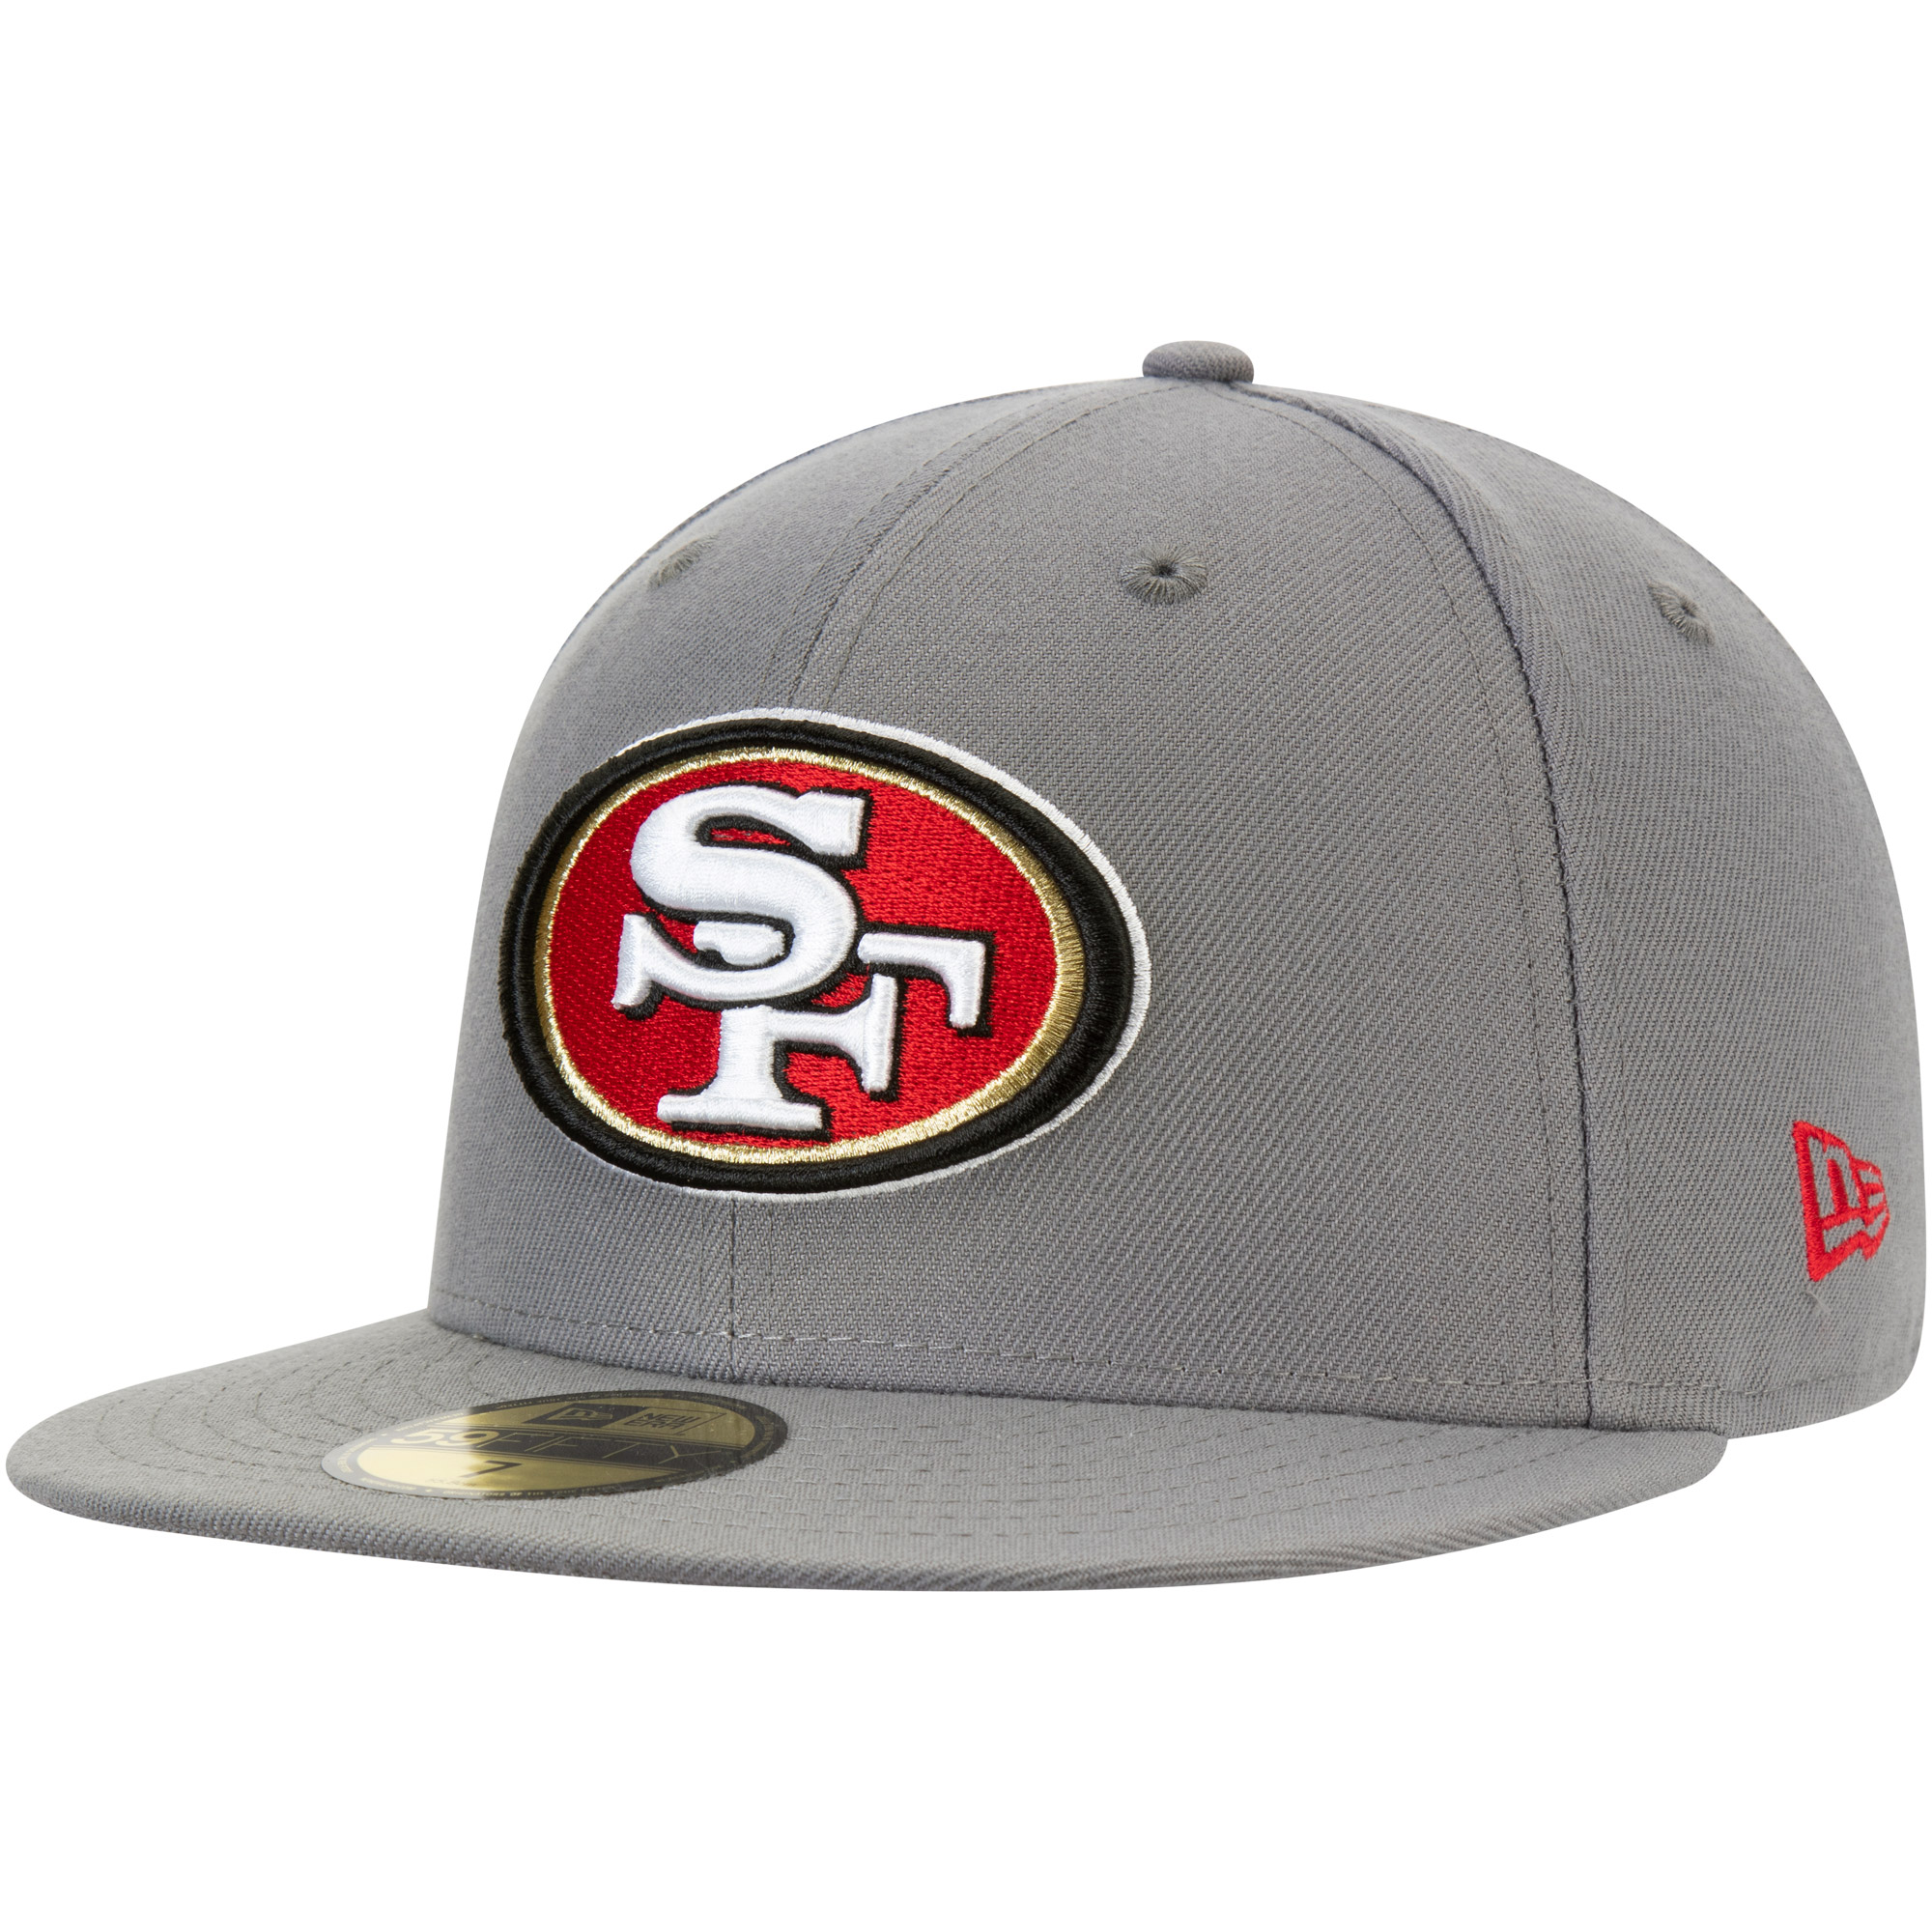 NFL San Francisco 49ers New Era 59Fifty LP Fitted Cap